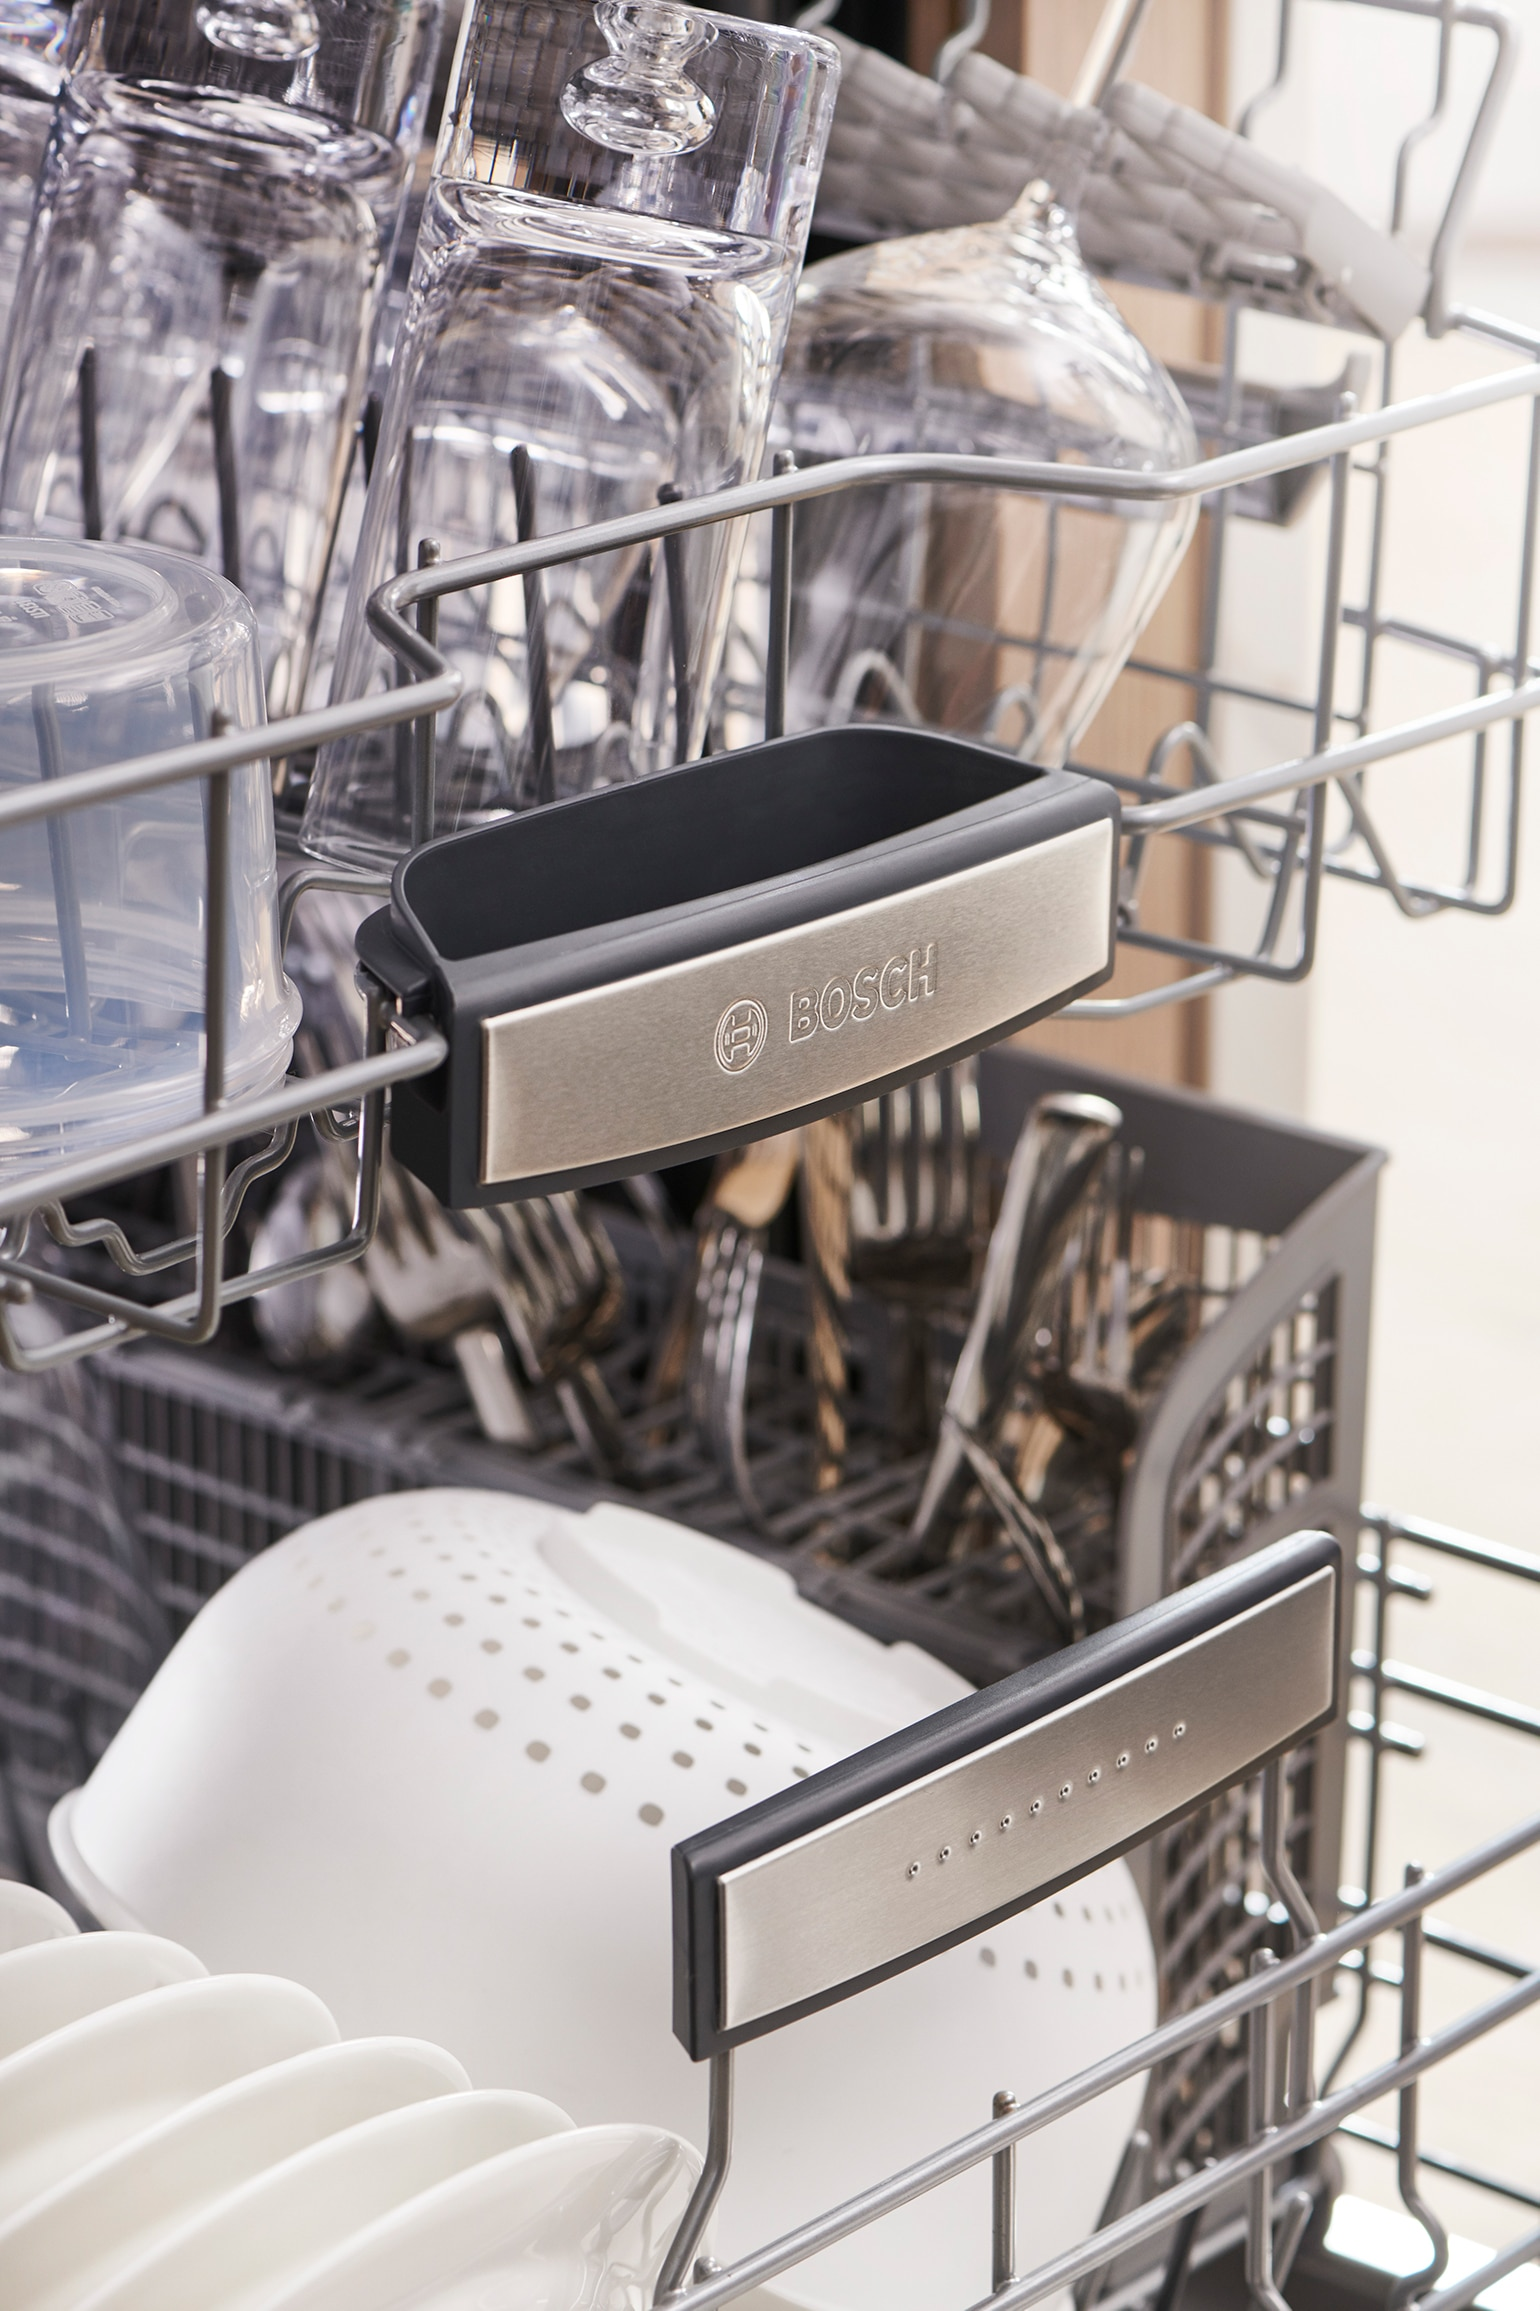 Bosch 800 Series Dish washer